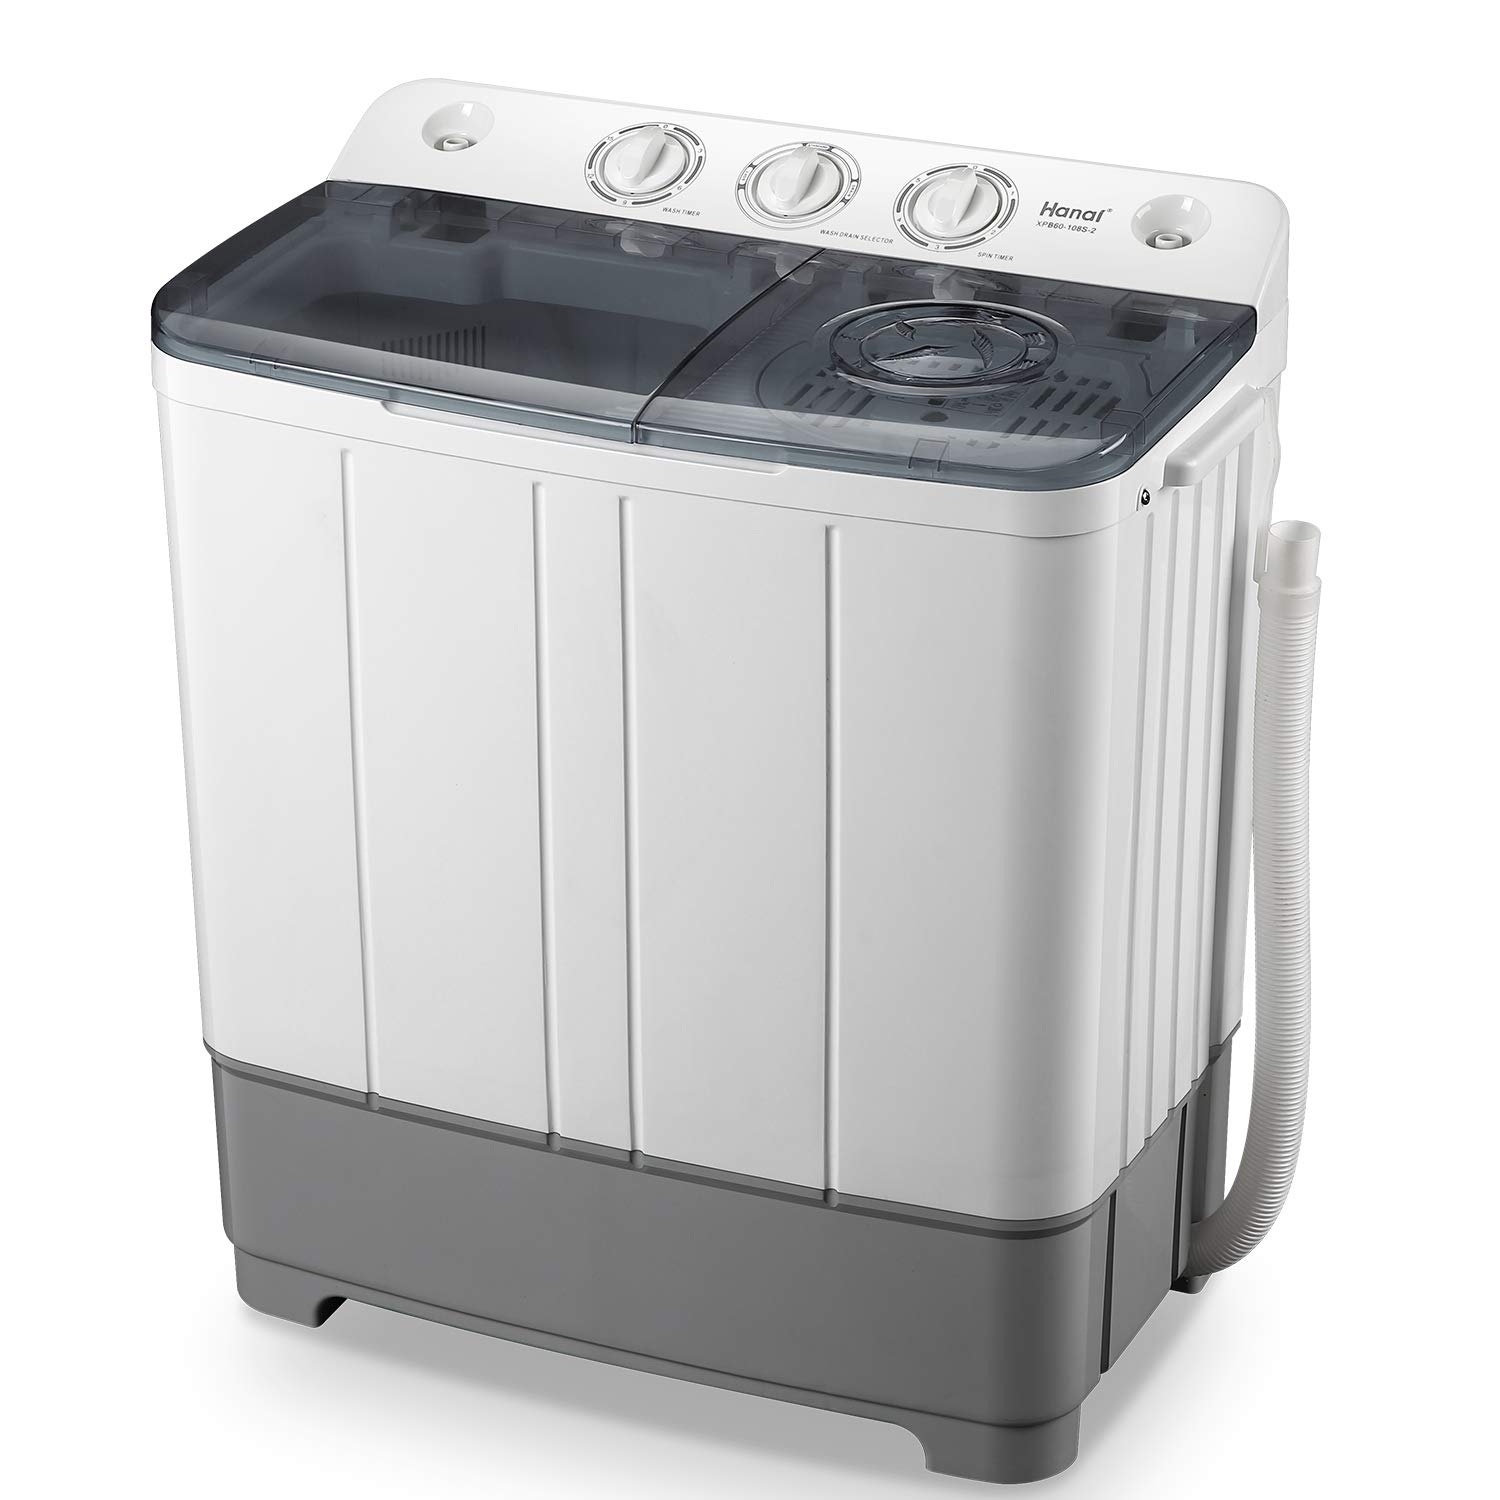 WANAI Portable Washing Machine Compact Mini Twin Tub Washer (13lbs) + Spinner (8lbs), Top-loading Washing Machine with Timer, Ideal for Dorms and Apartments